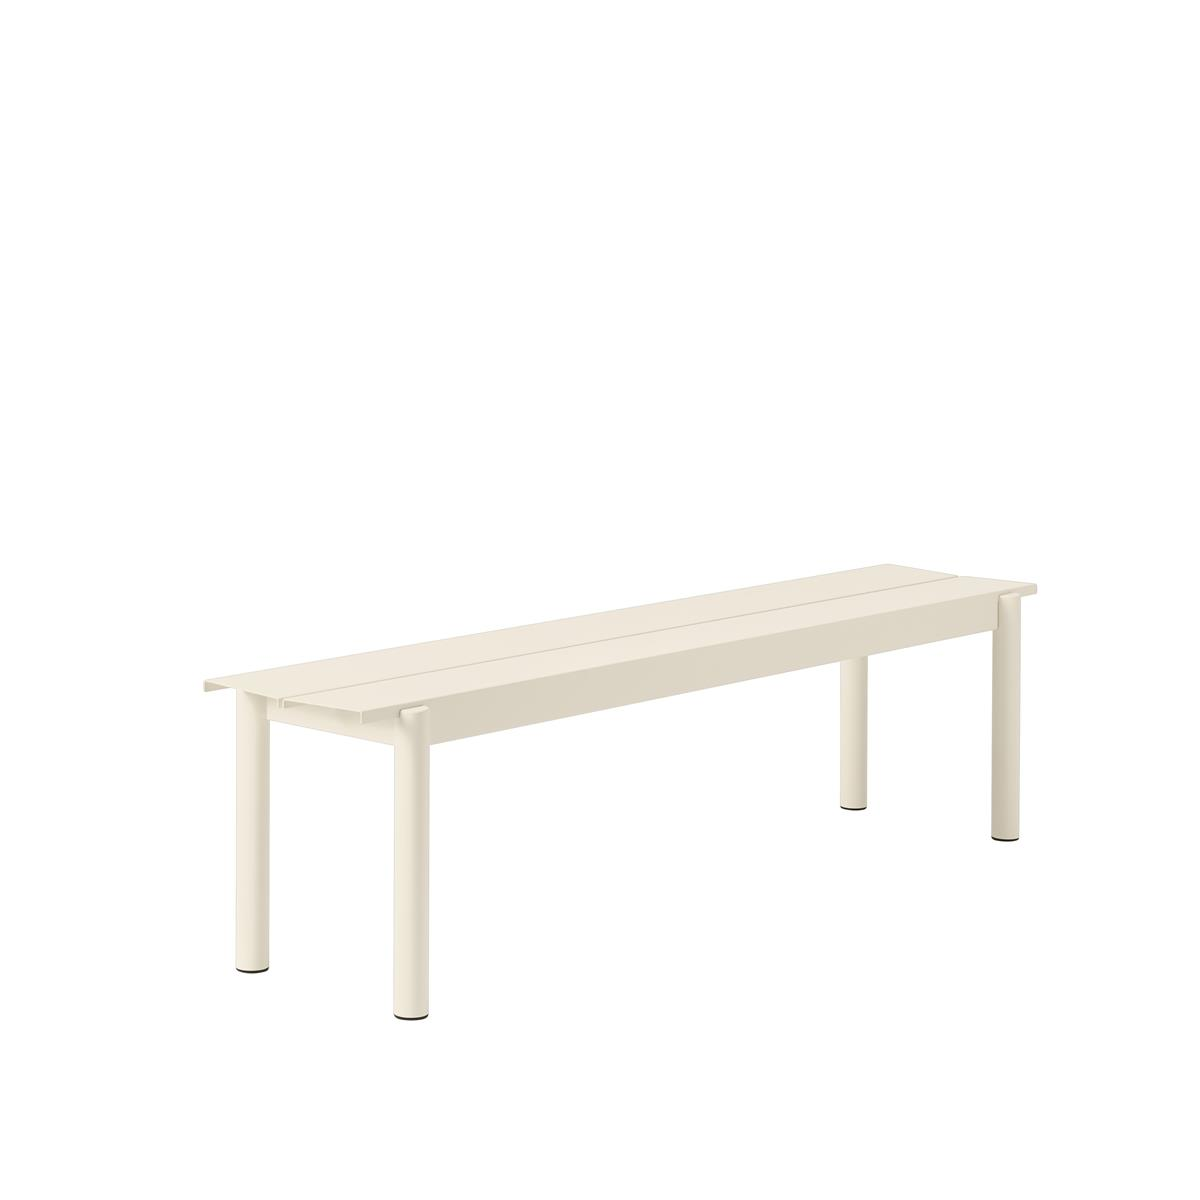 Linear Steel Bench 170 x H45,5 - White